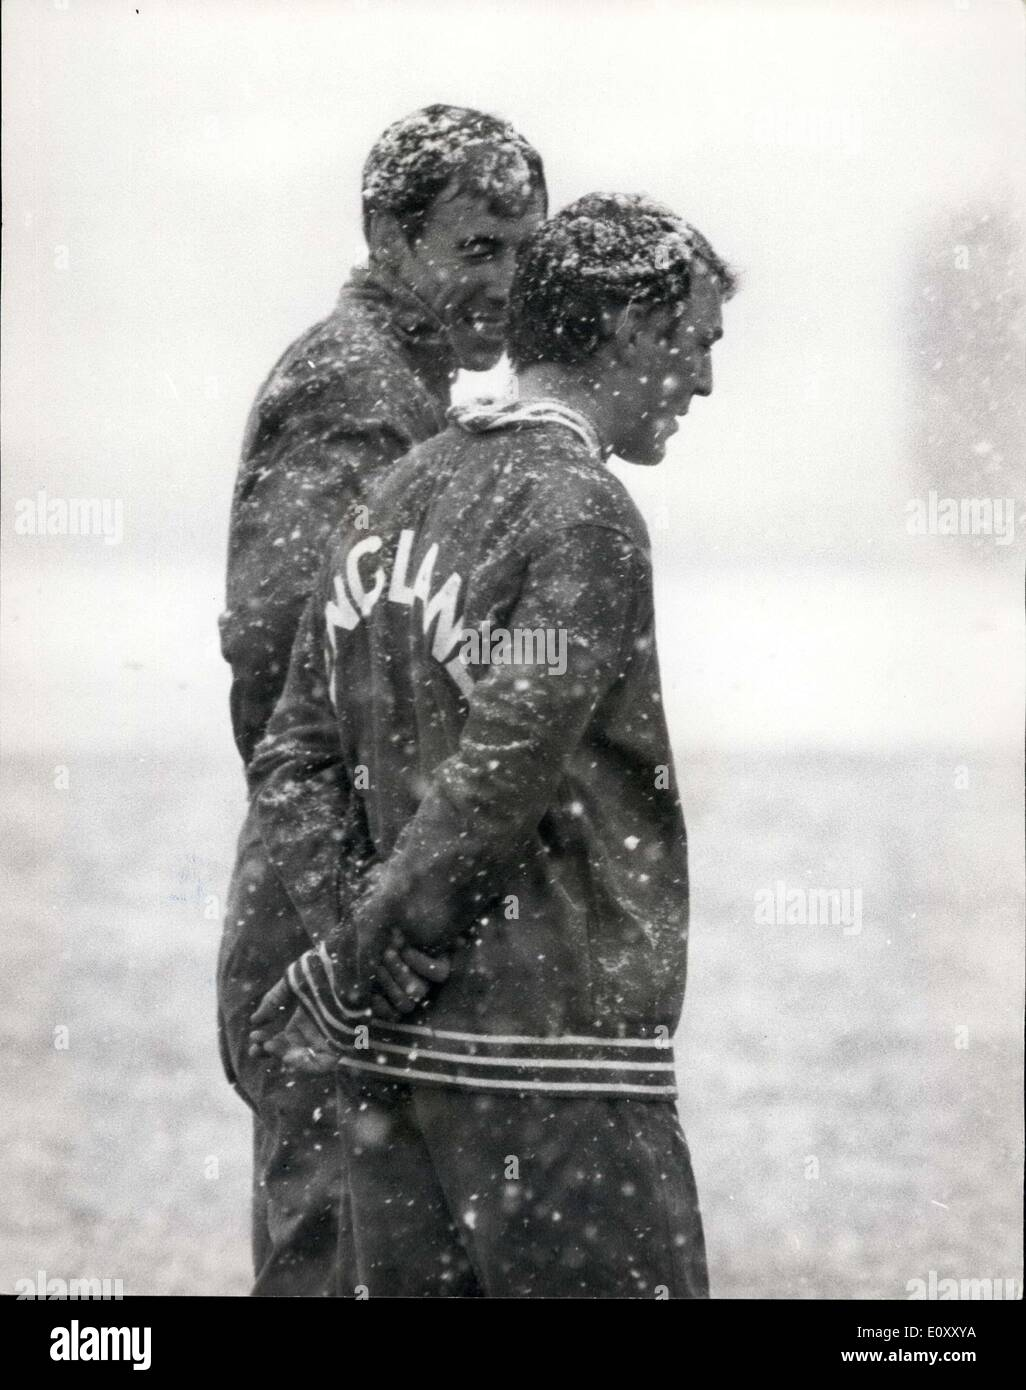 Apr. 02, 1968 - England Footballers train for tomorrow's match against Spain. England footballers were at Rochampton today, training for tomorrow's match against Spain in the European Nations Cup final first leg - at Wembley. Photo shows Gordon Banks (left) chats to Jimmy Greaves as they stand in the snowstorm during a training spell. - Stock Image